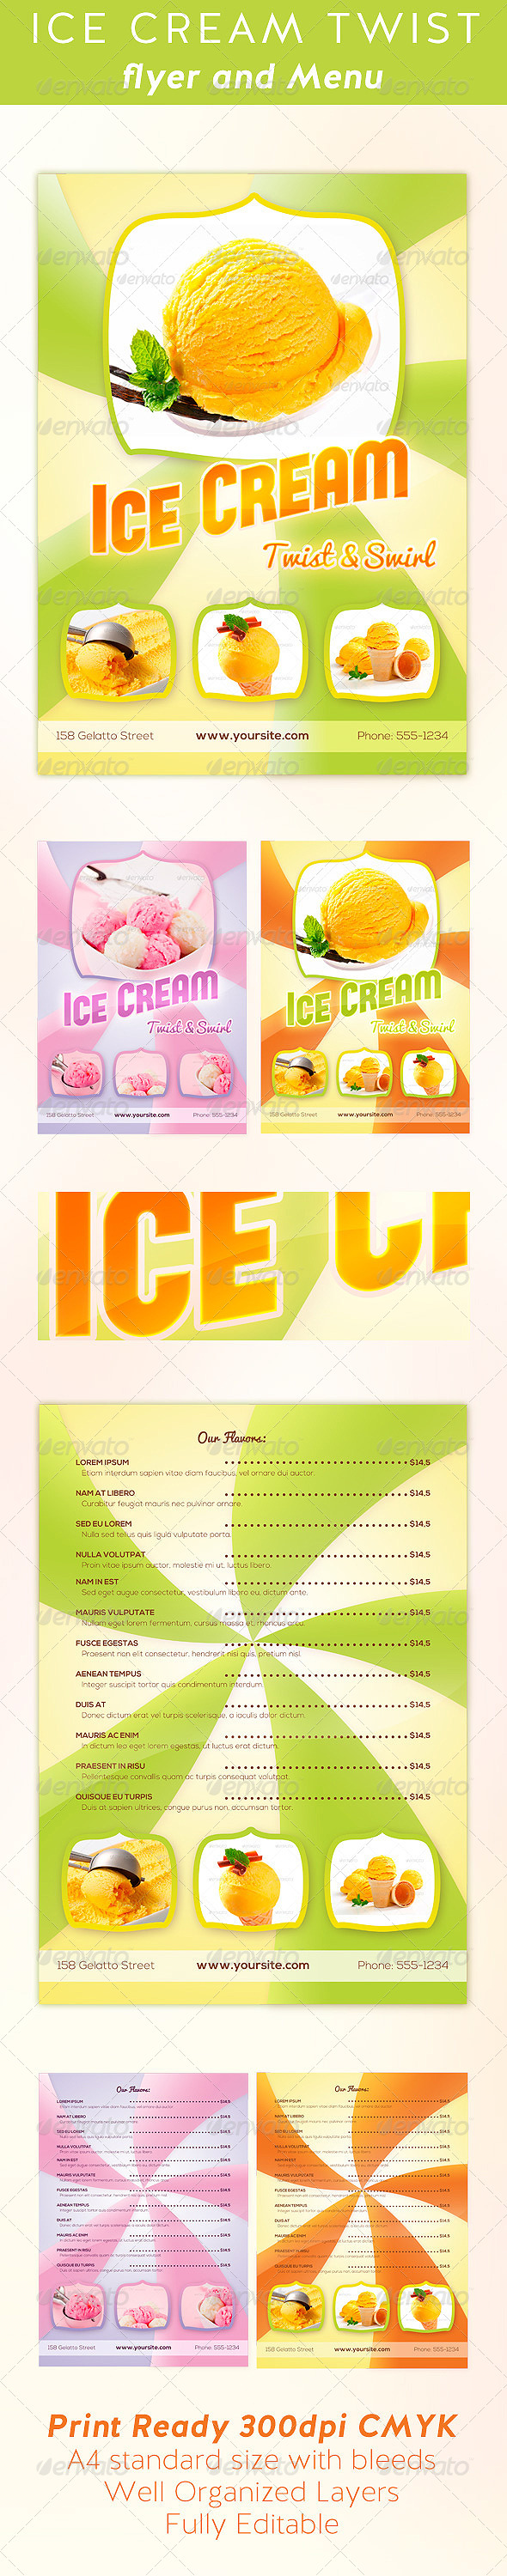 GraphicRiver Ice Cream Twist Flyer and Menu Template 7027561